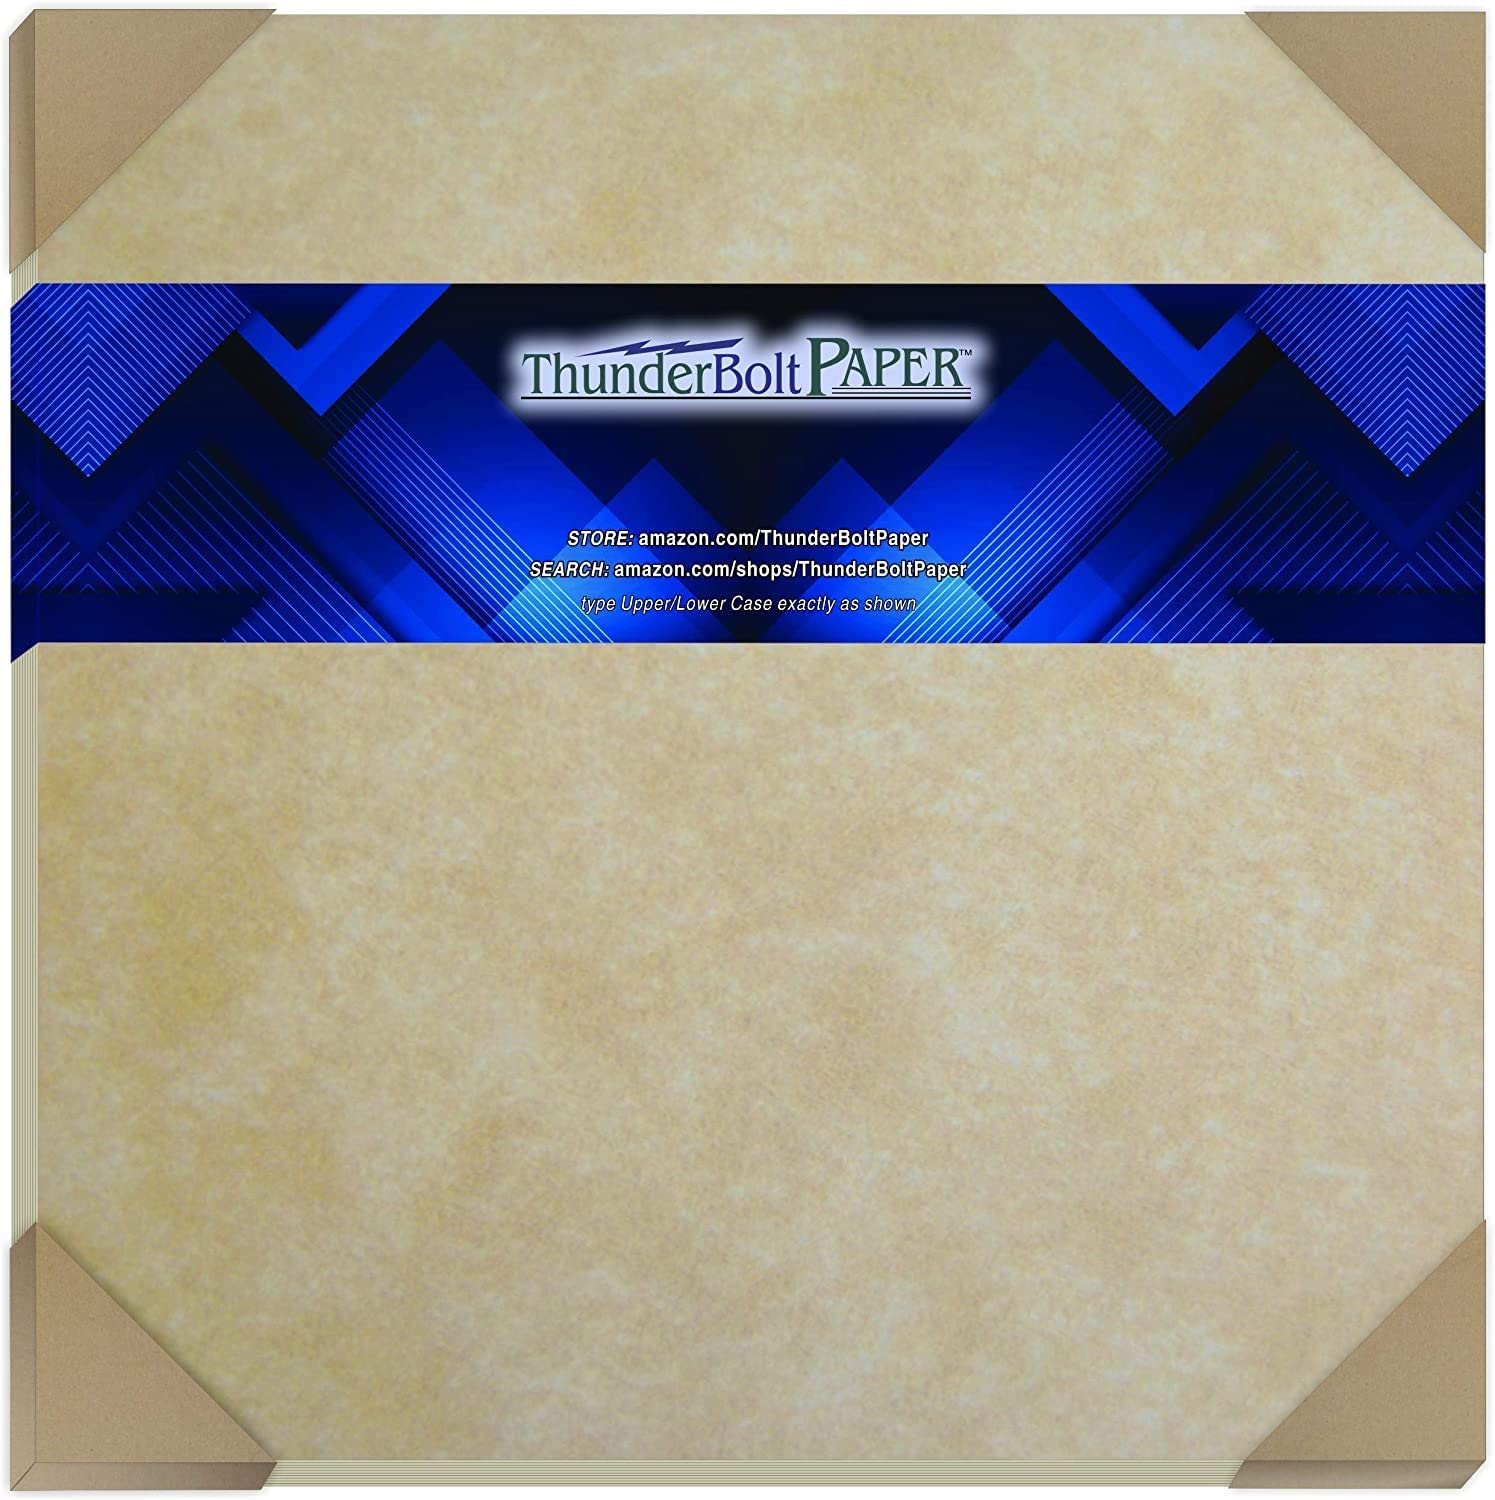 25 Old Age Parchment 65lb Cover Paper Sheets 12 X 12 Inches Cardstock Weight Colored Sheets (12